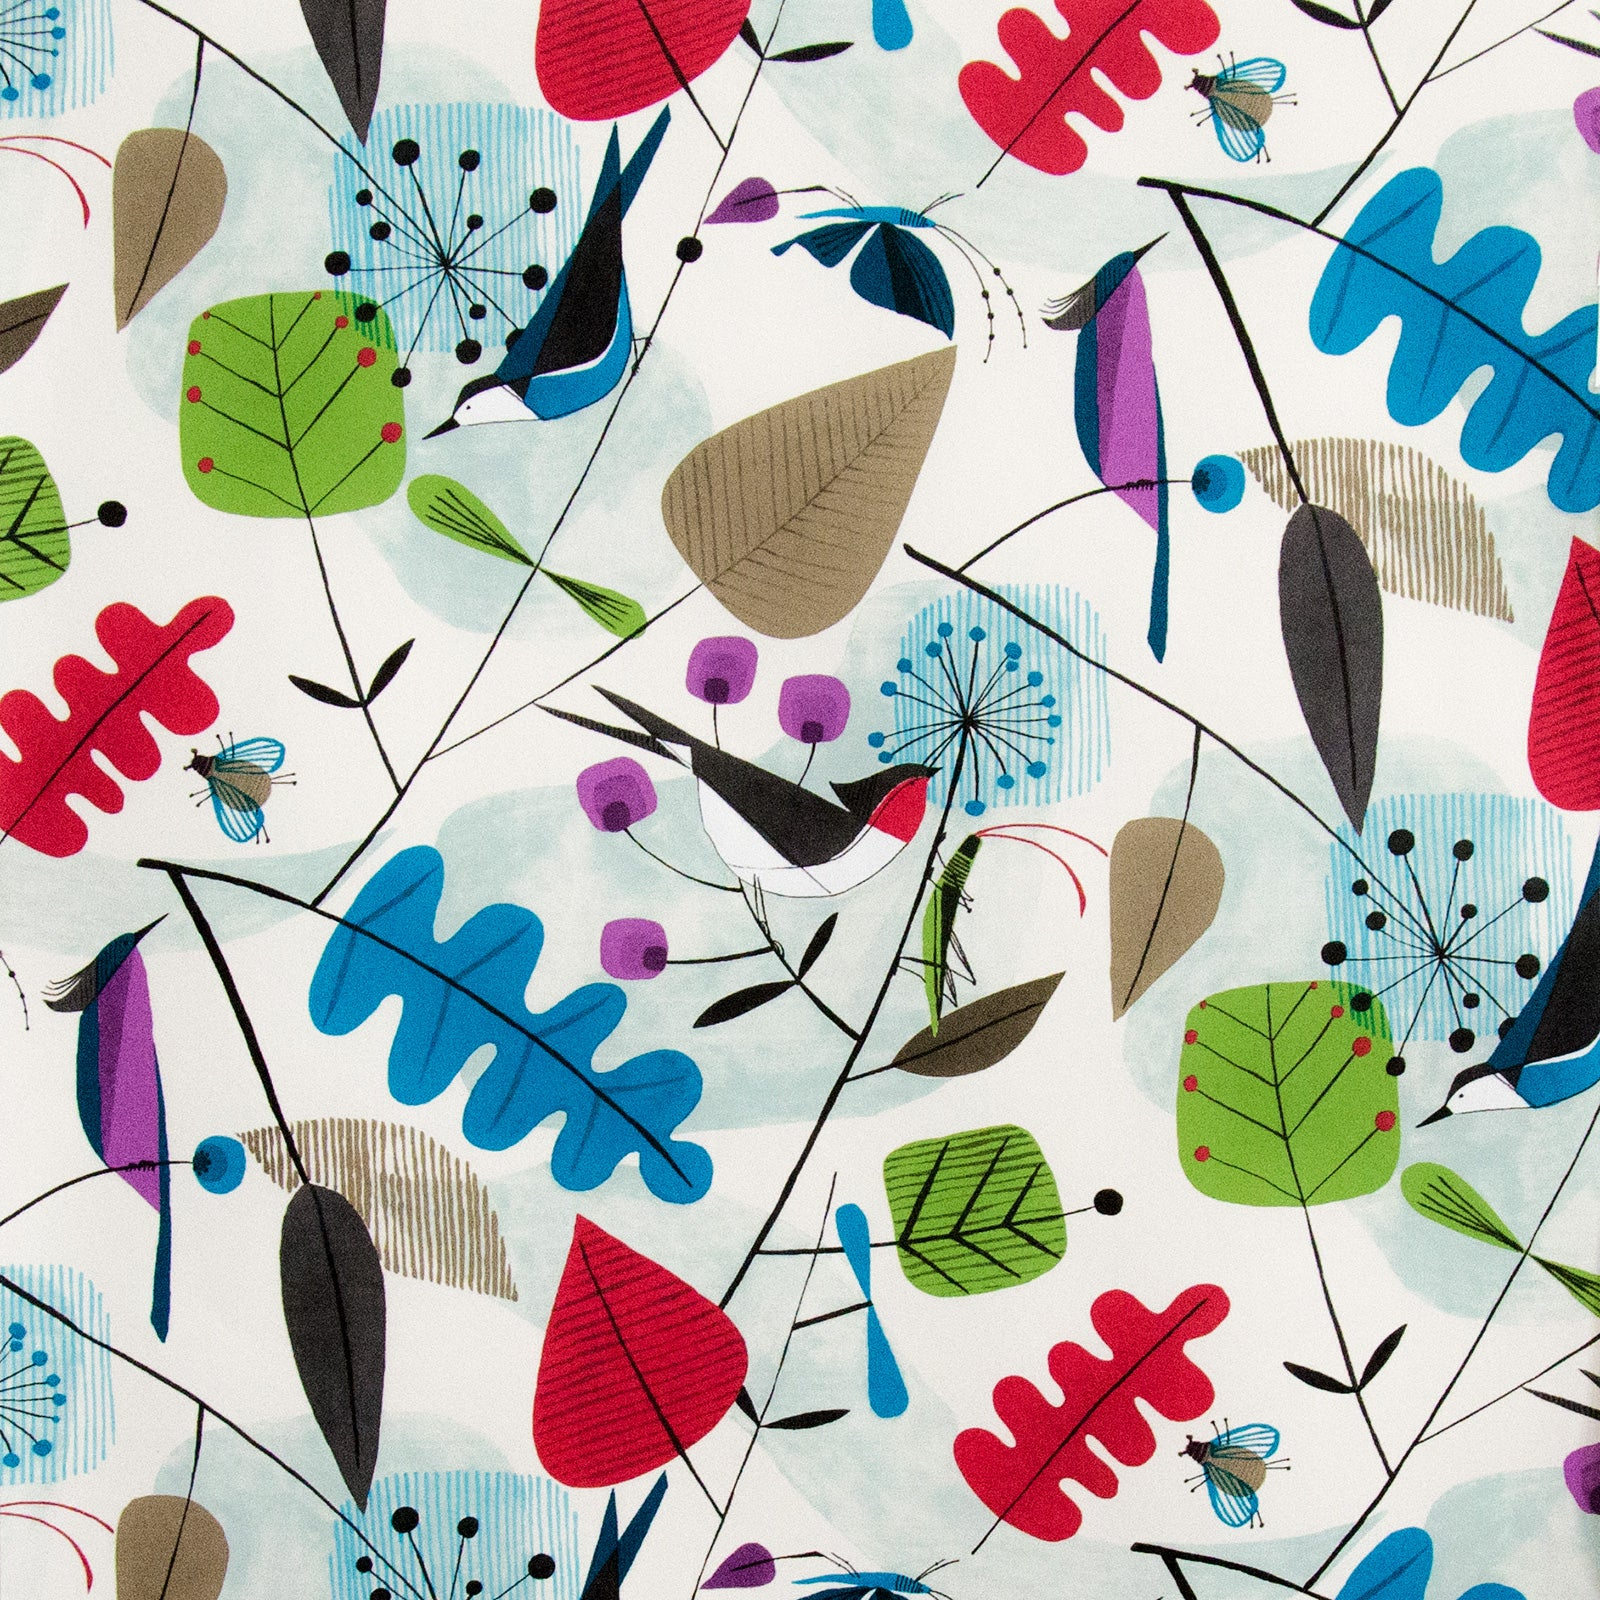 Scandinavian Wallpaper retro modern graphic bird leaves